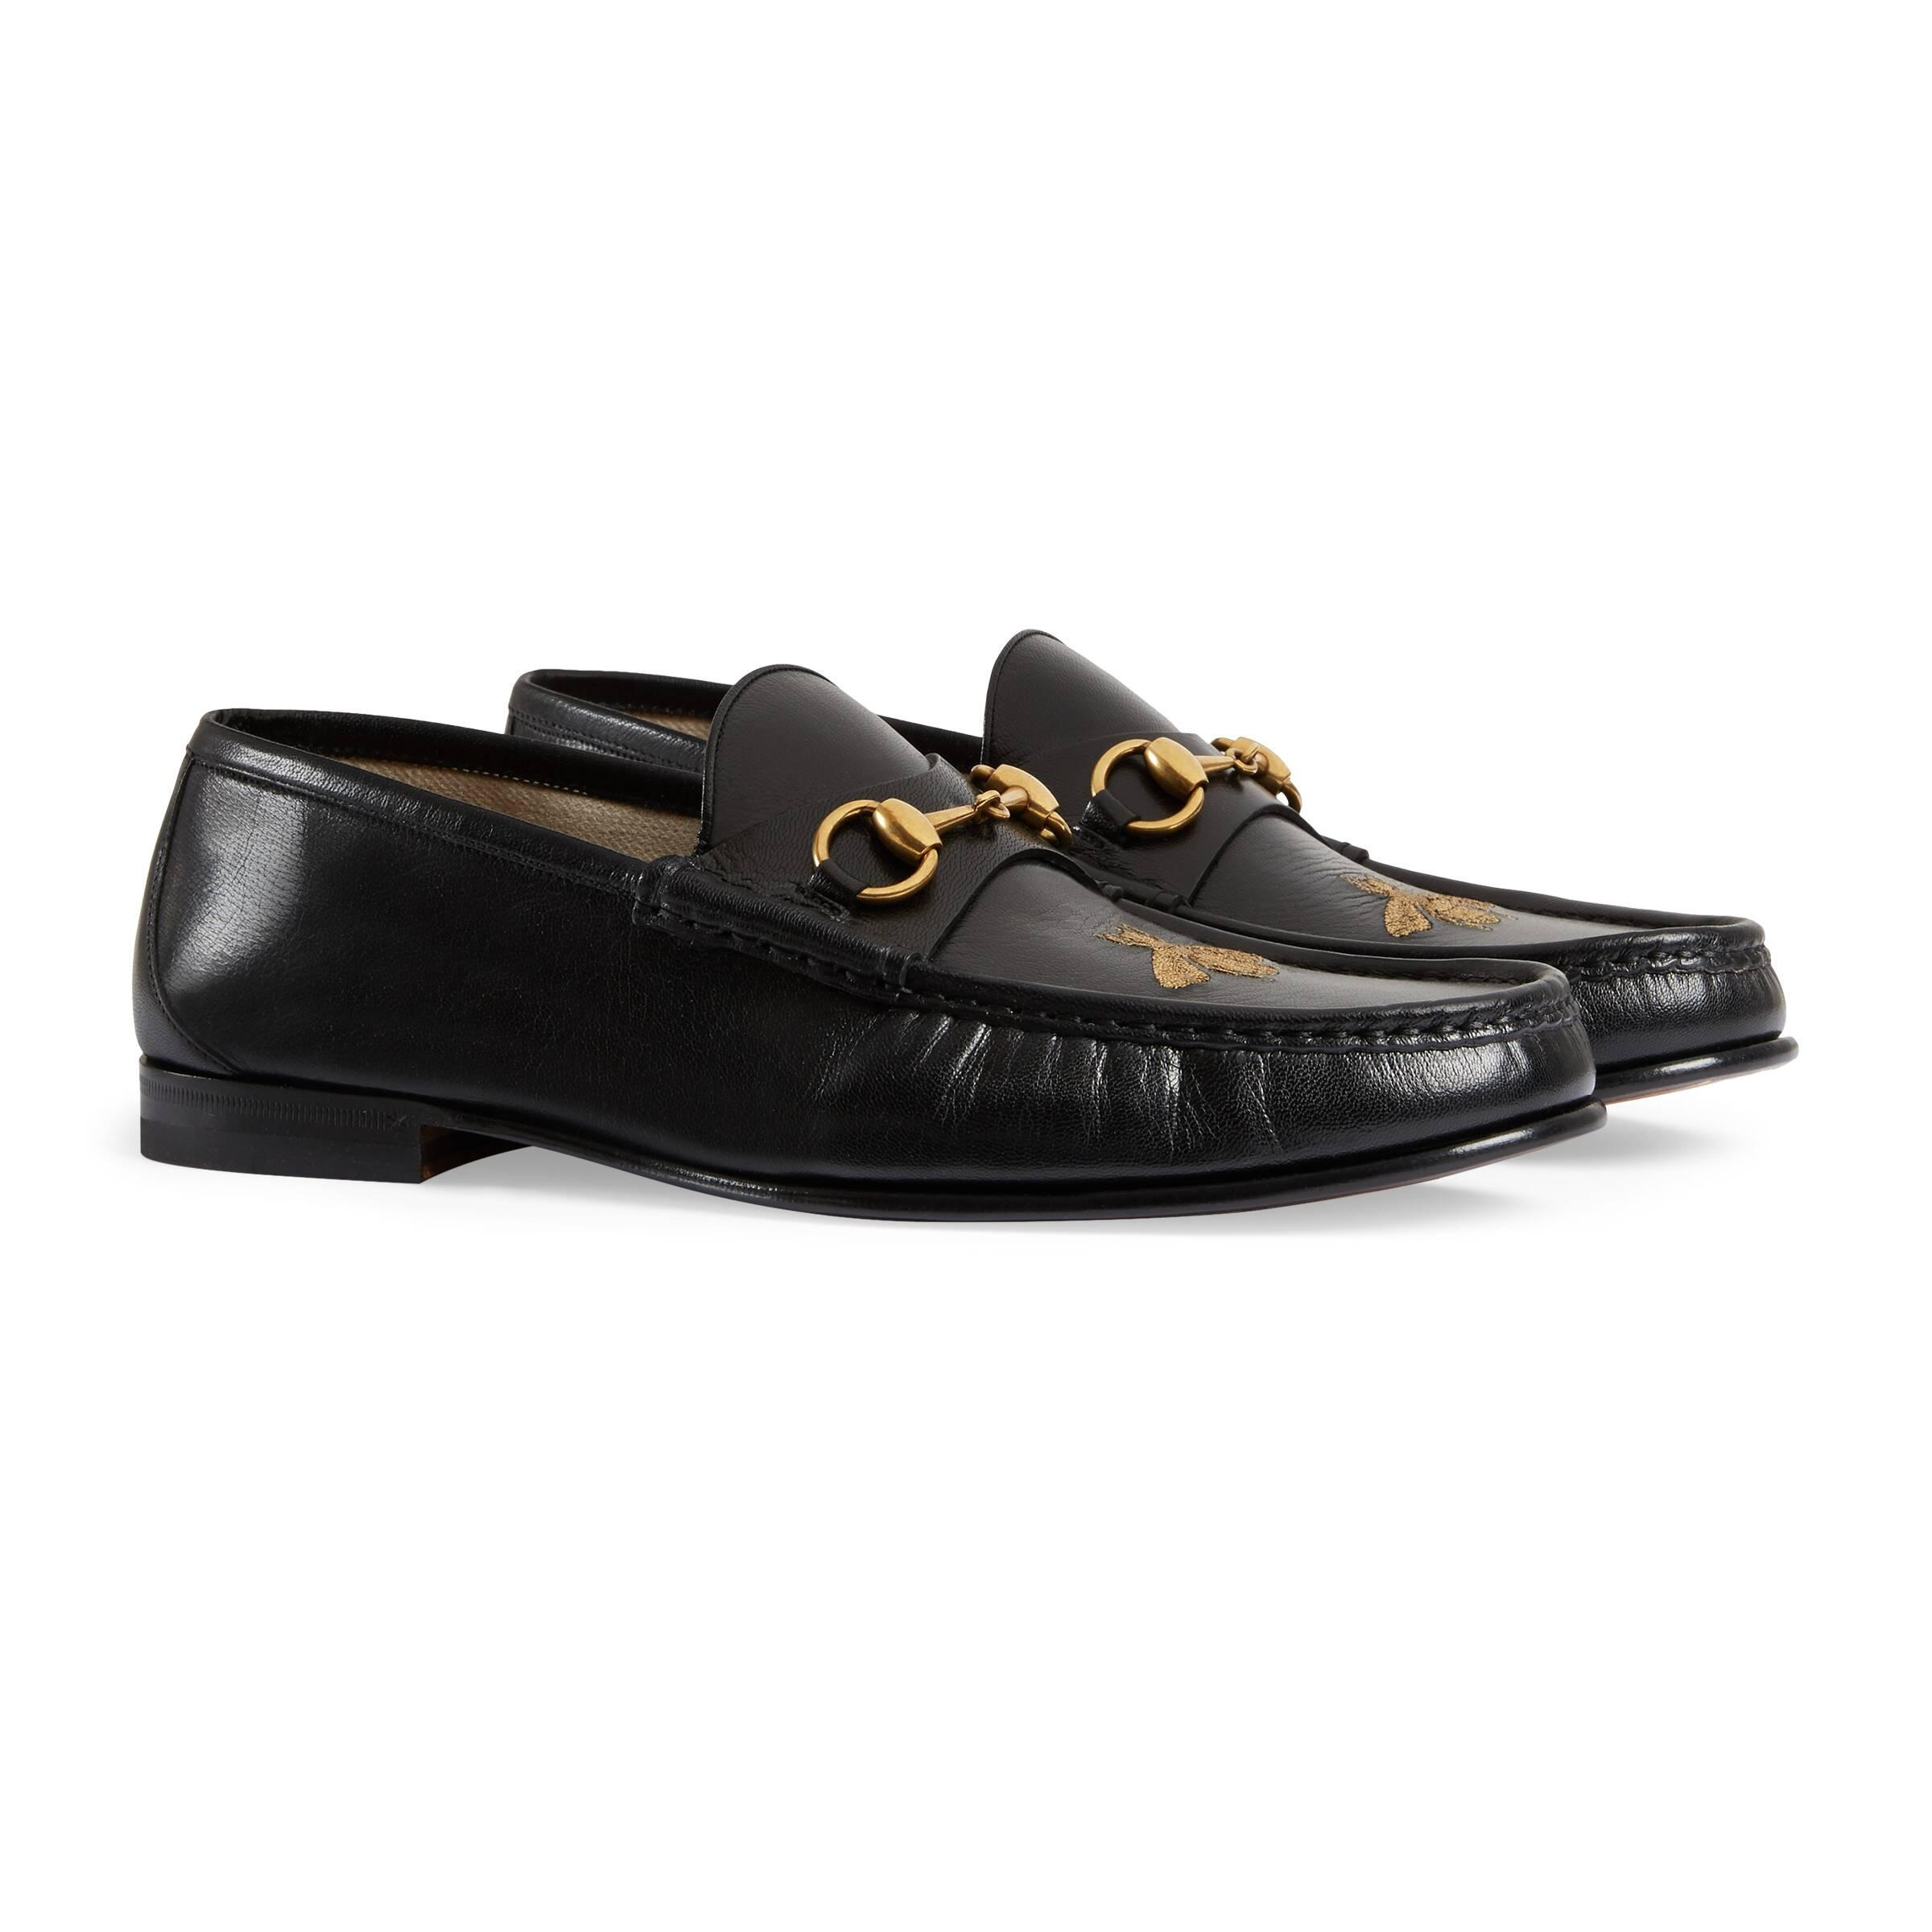 Gucci Leather Loafer With Bee in Black